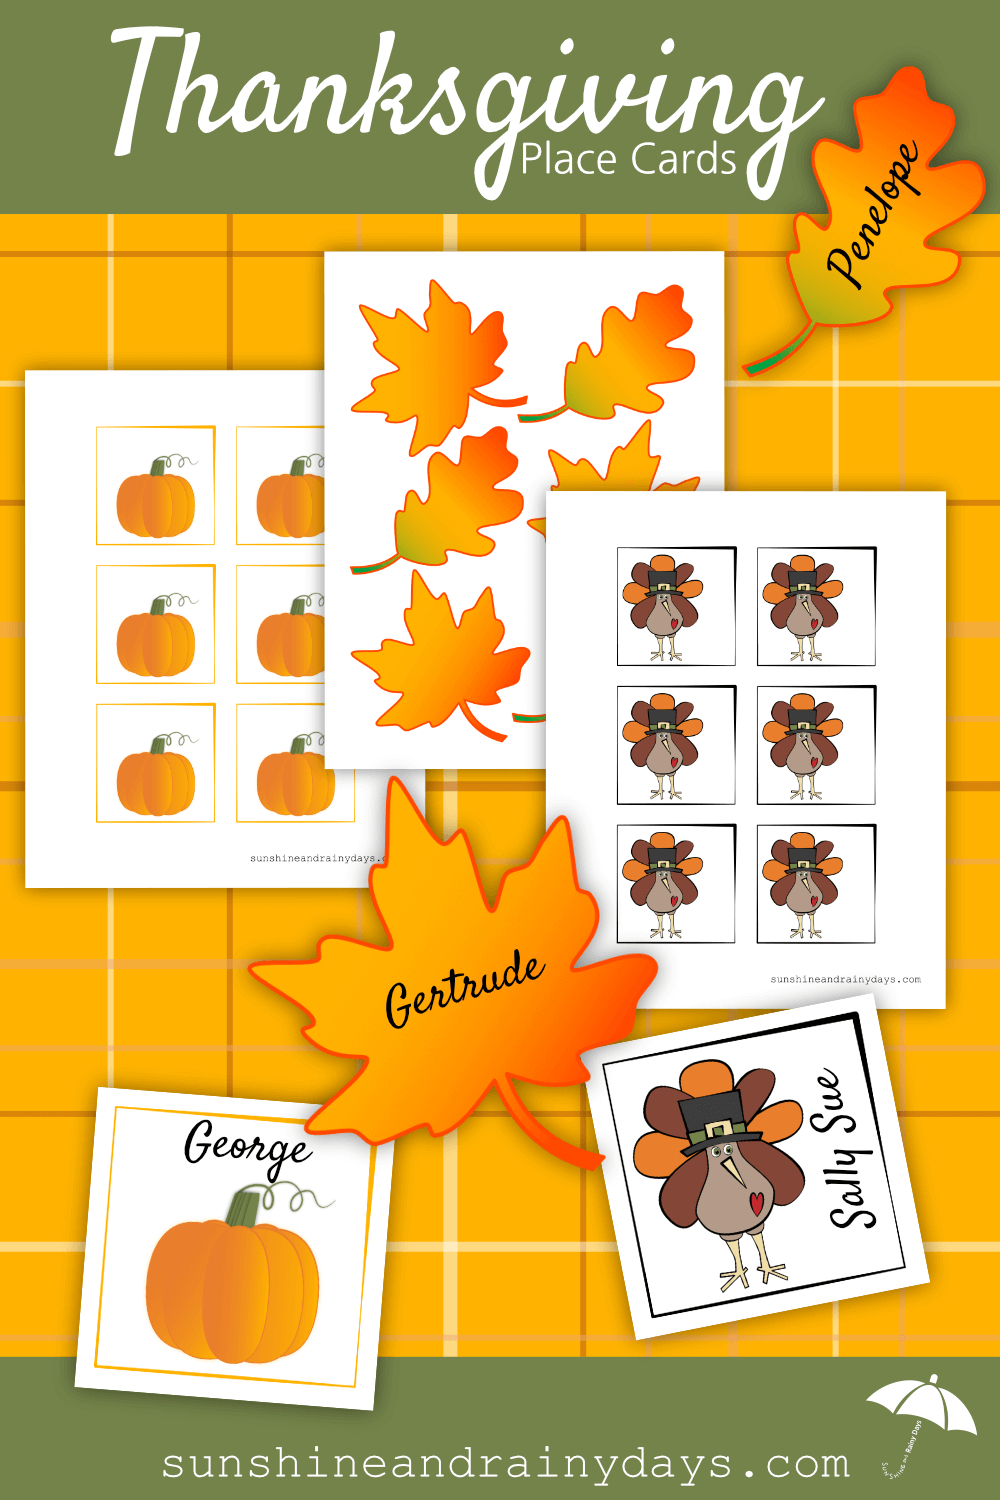 Thanksgiving Place Card Printable | Thanksgiving Printables - Free Printable Thanksgiving Place Cards To Color